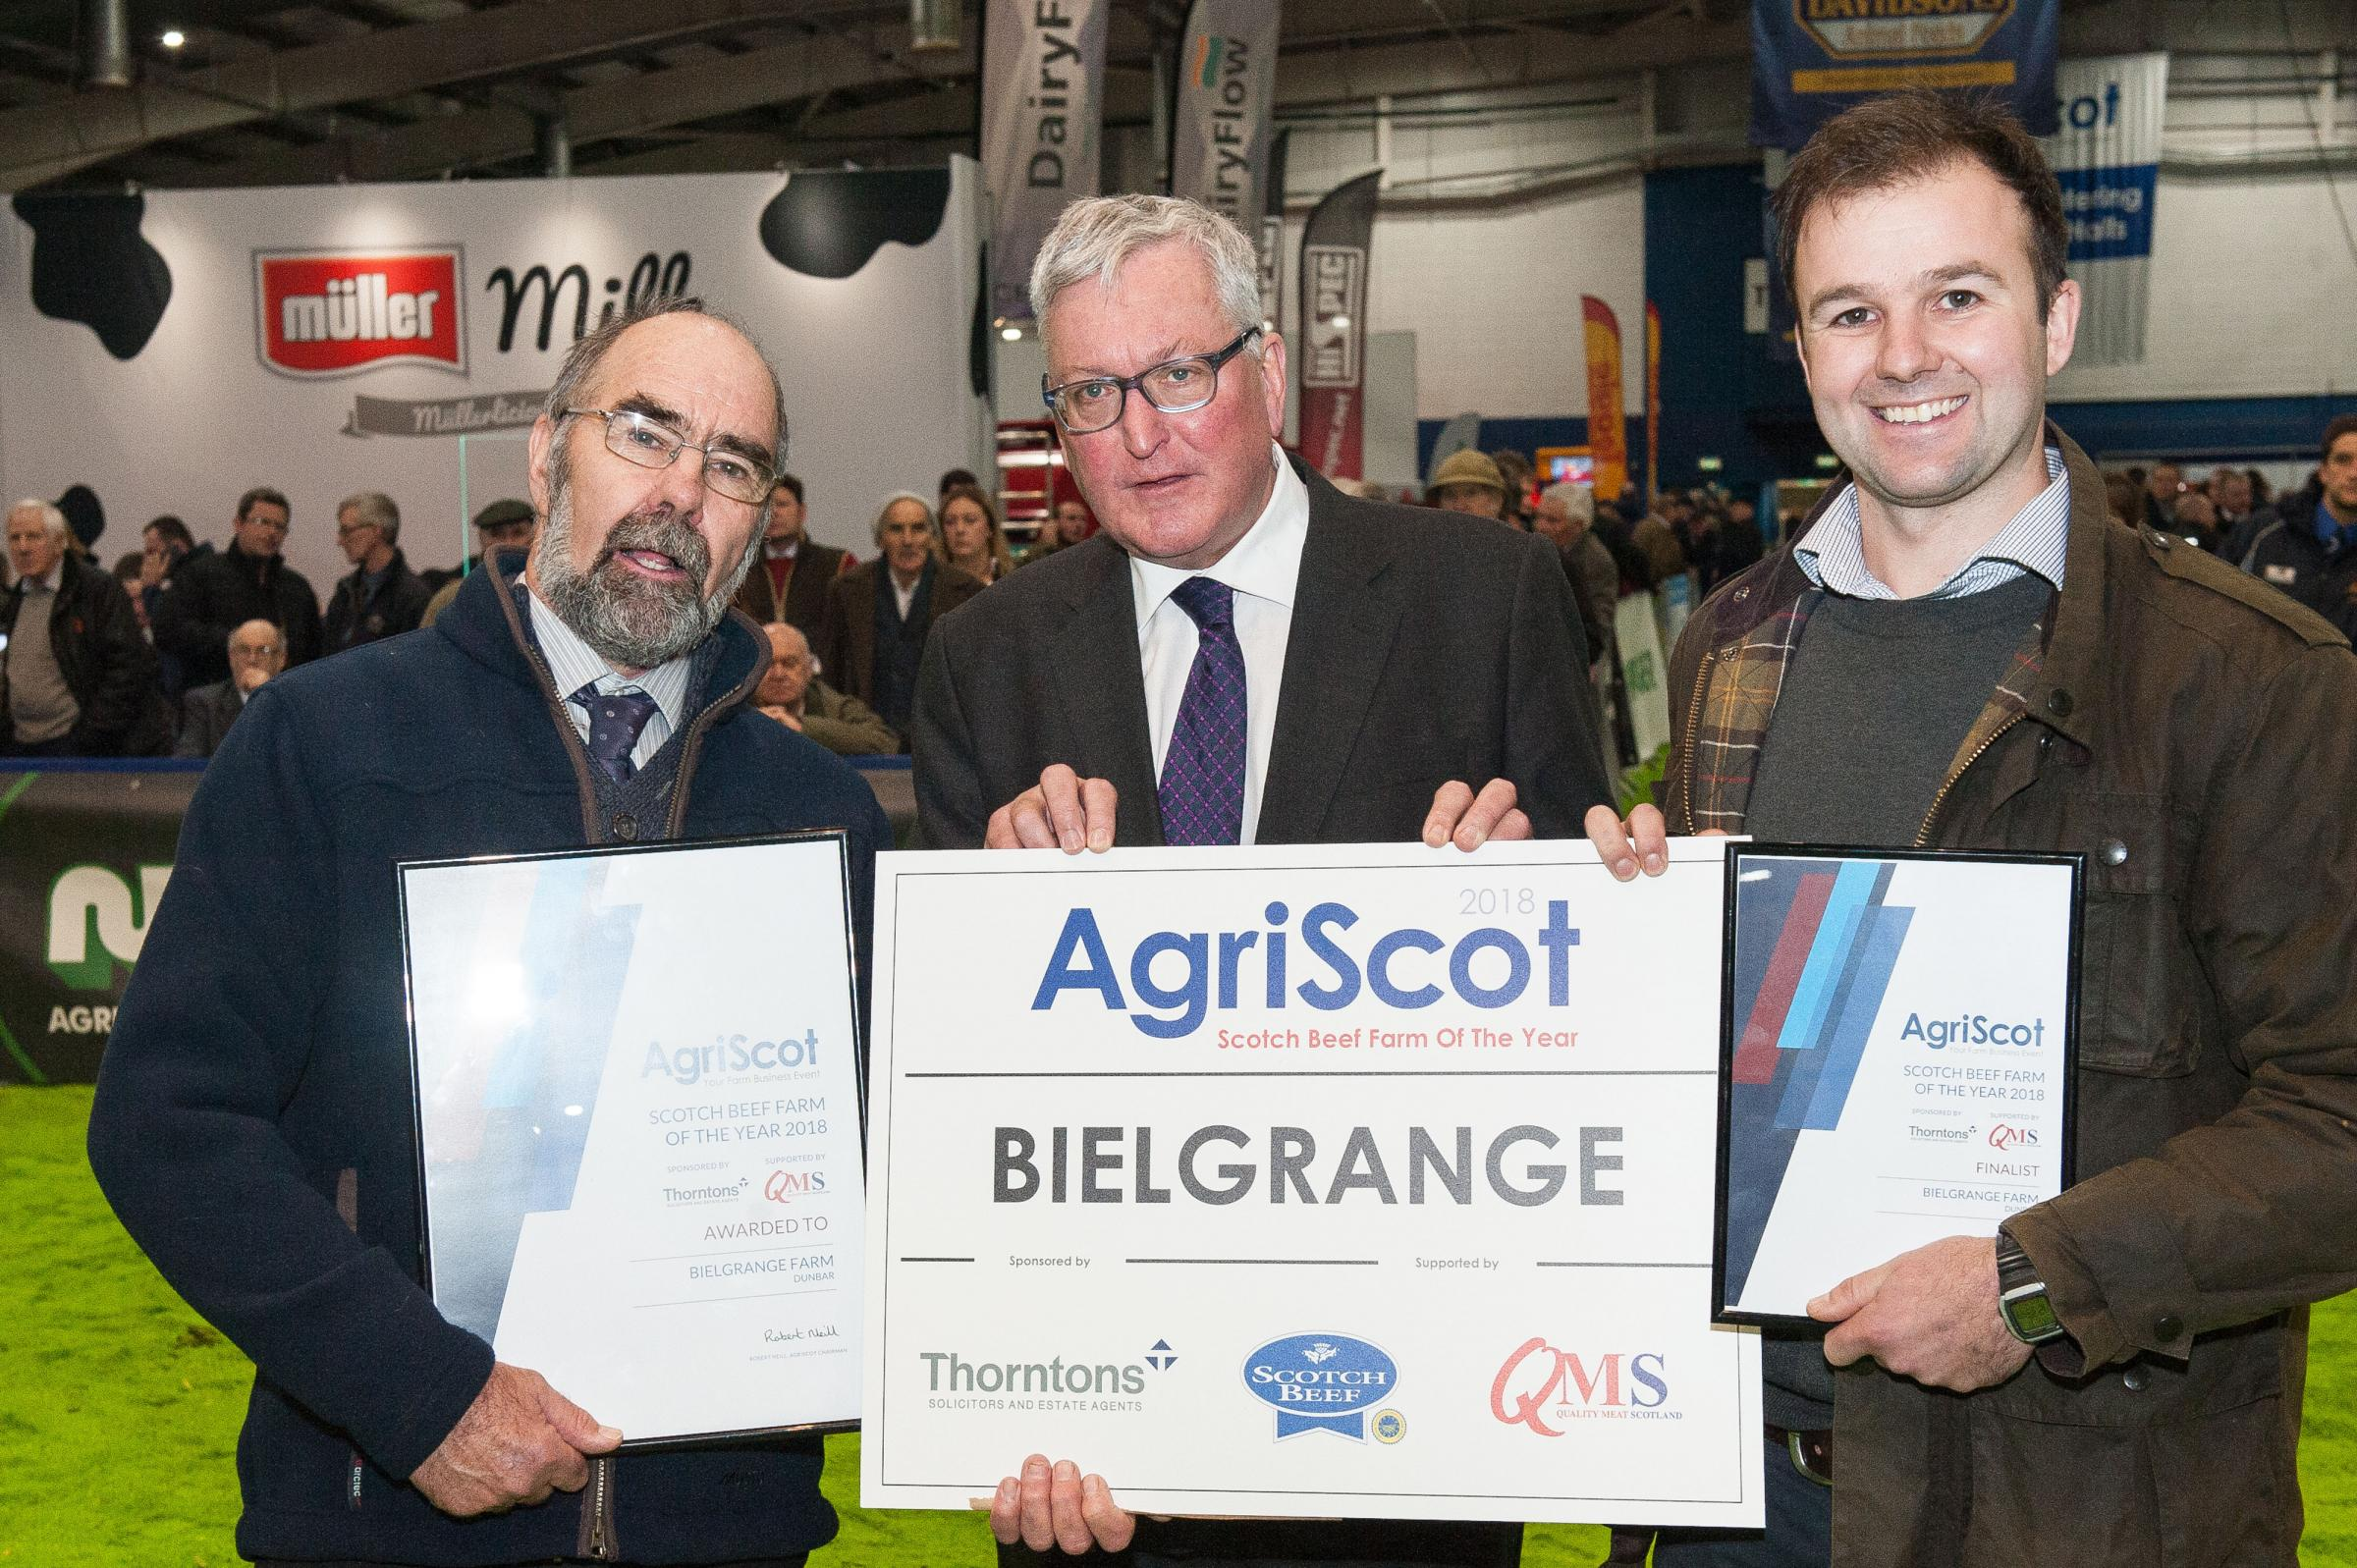 AgriScot Scotch Beef Farm of the Year award went to Bielgrange farm in Dunbar, Angus and  Niall Jeffrey with Fergus Ewing, Cabinet Secretary for the Rural Economy and Connectivity 